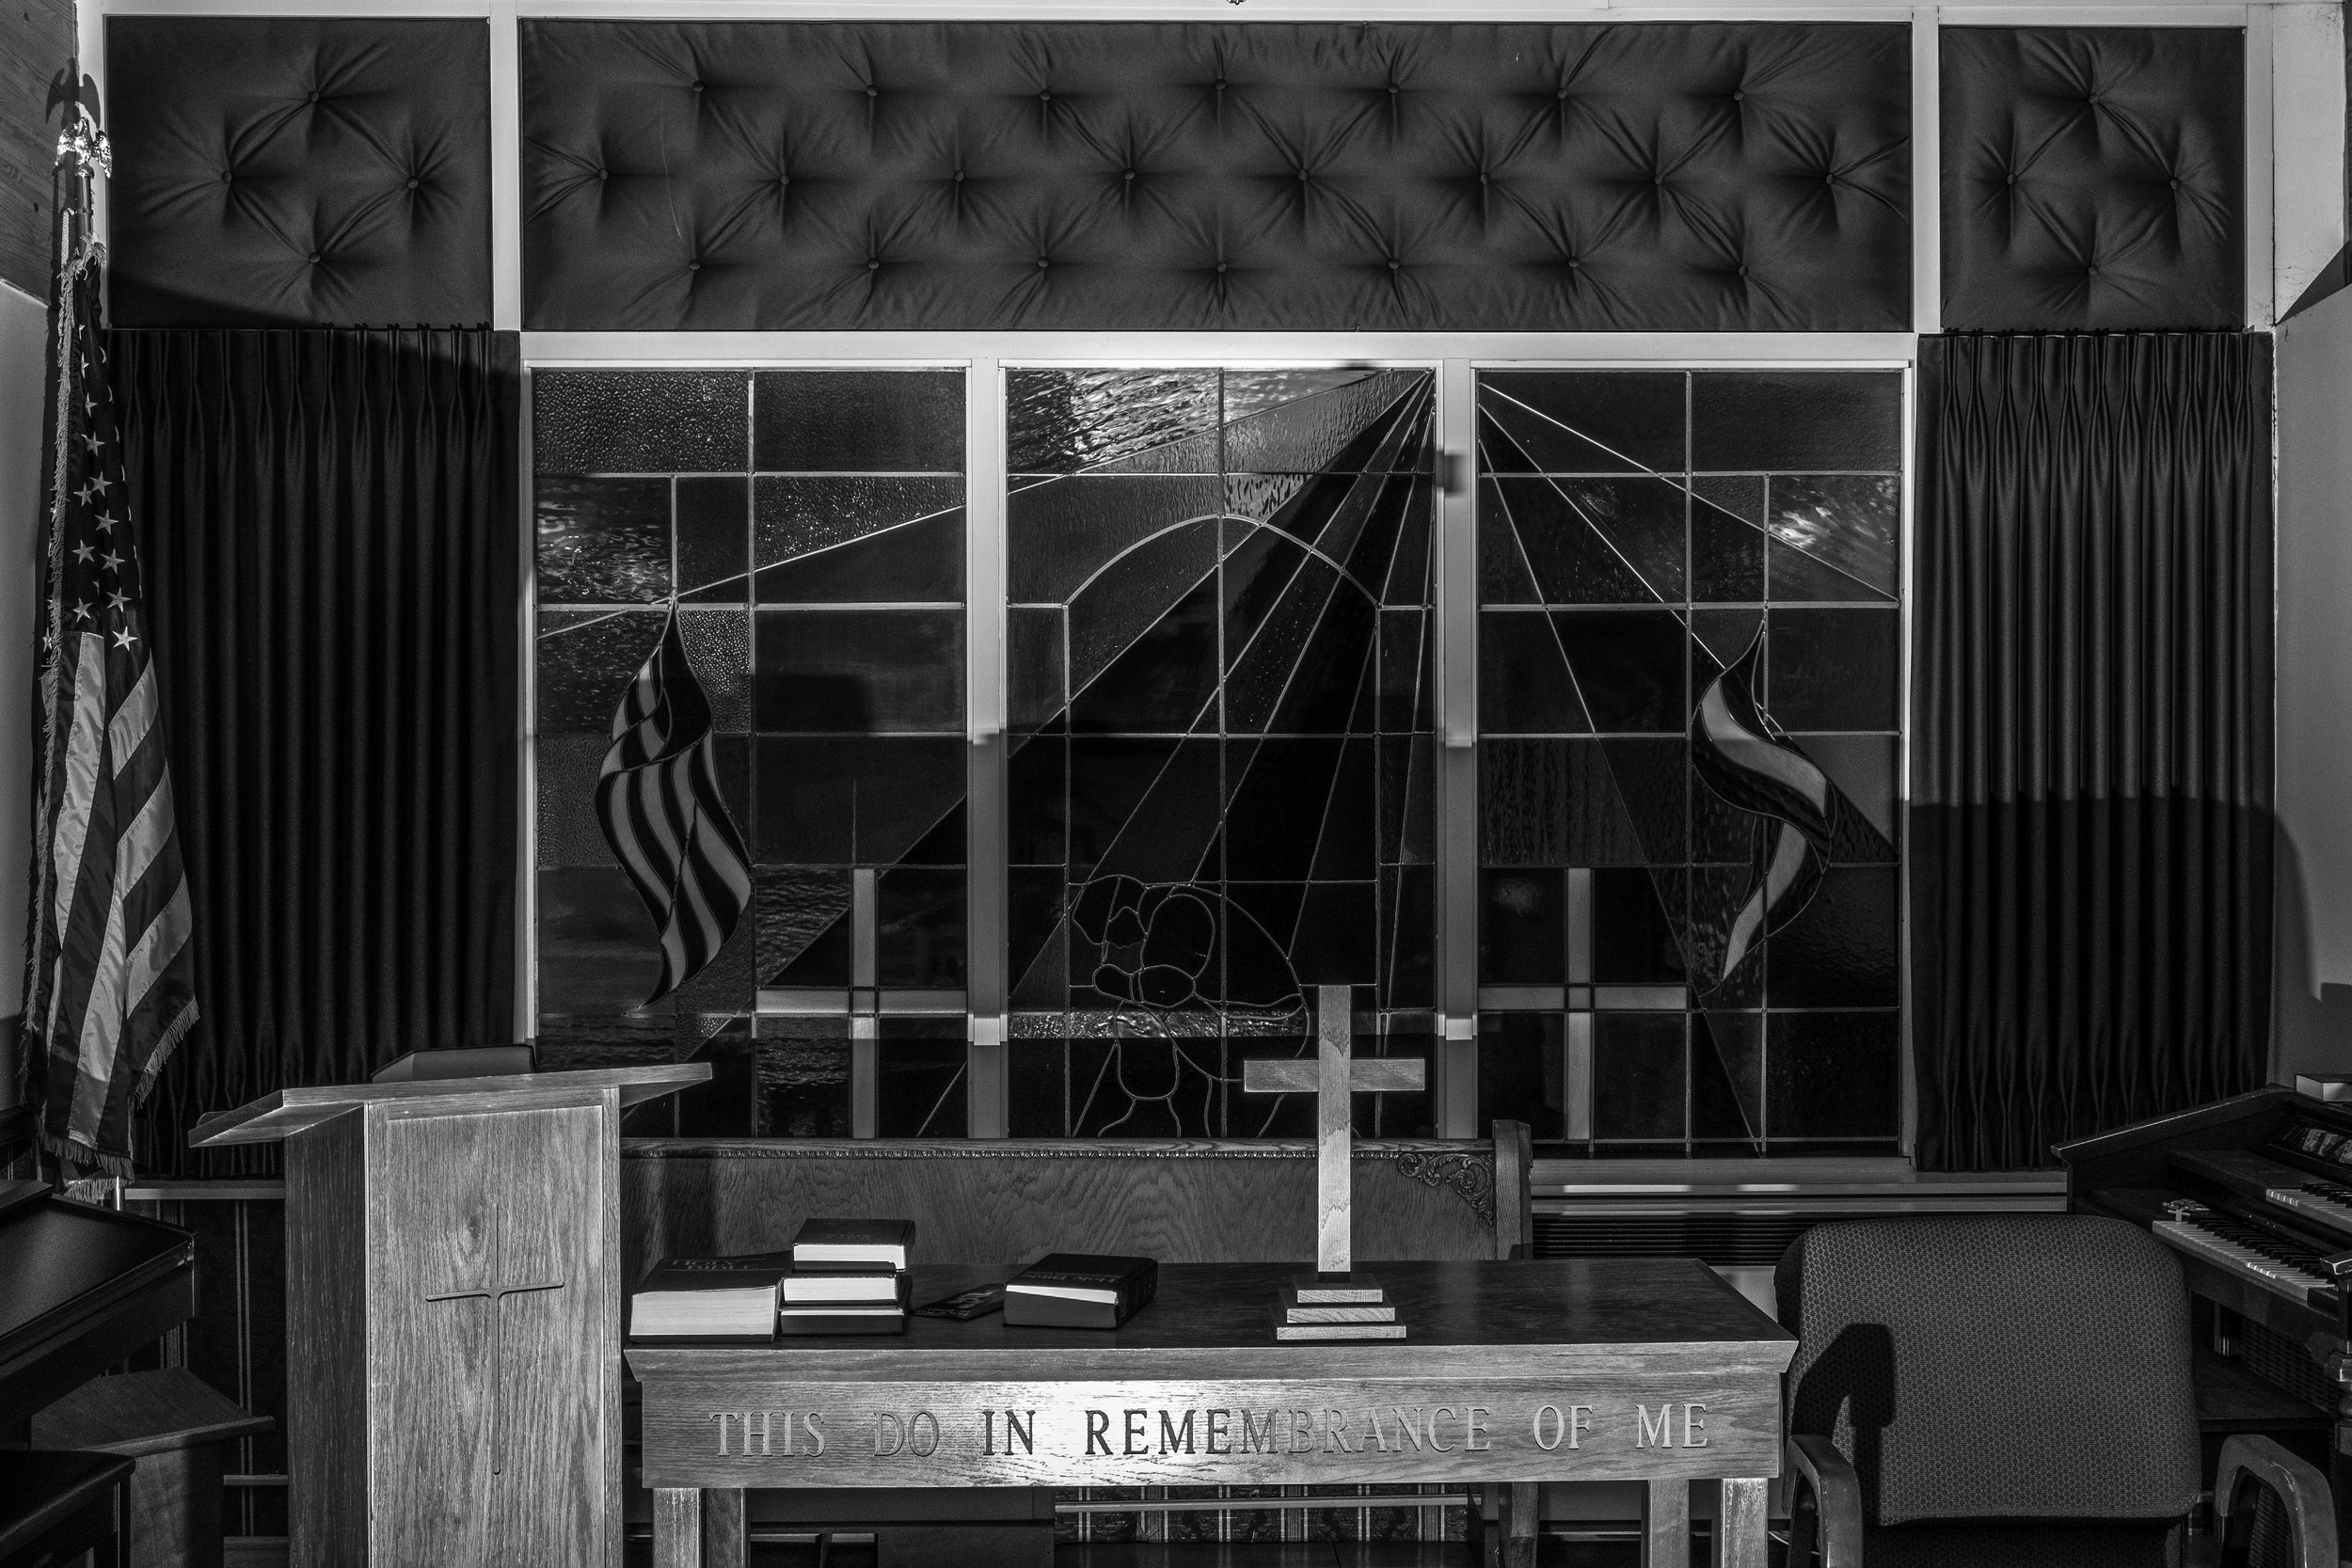 The chapel as seen at the Missouri Veterans Home in Mexico, Missouri on Friday, Jun. 21, 2019.